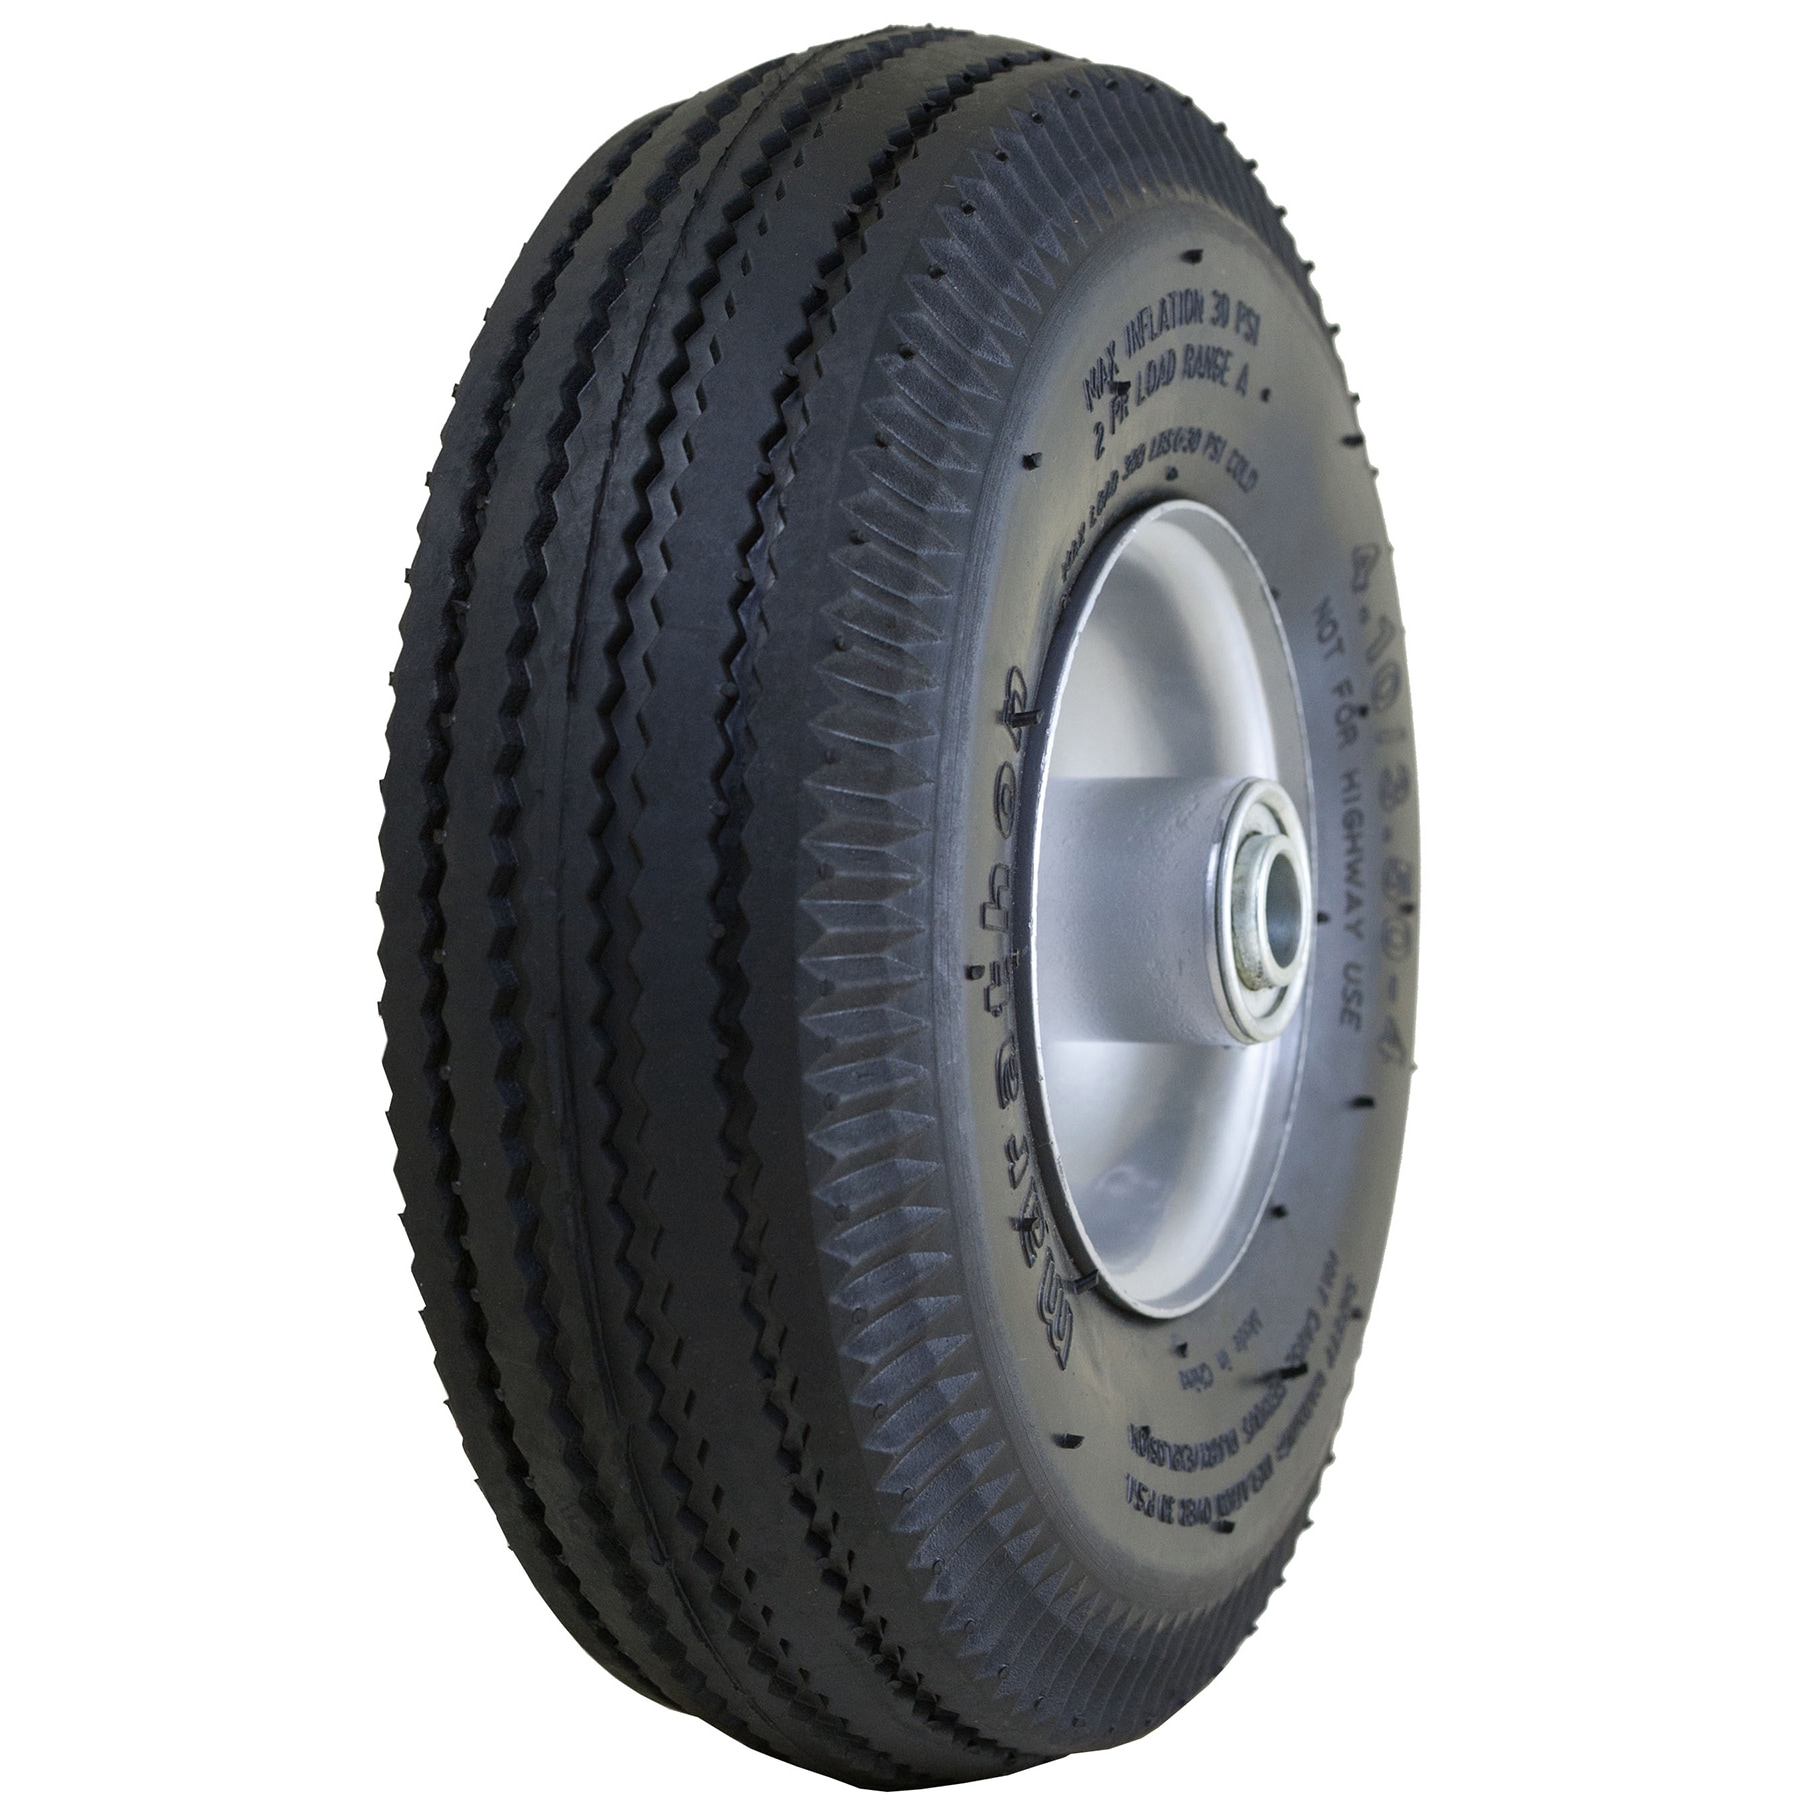 Marathon Industries 20010 4-inch Pneumatic Tire & Tube On...